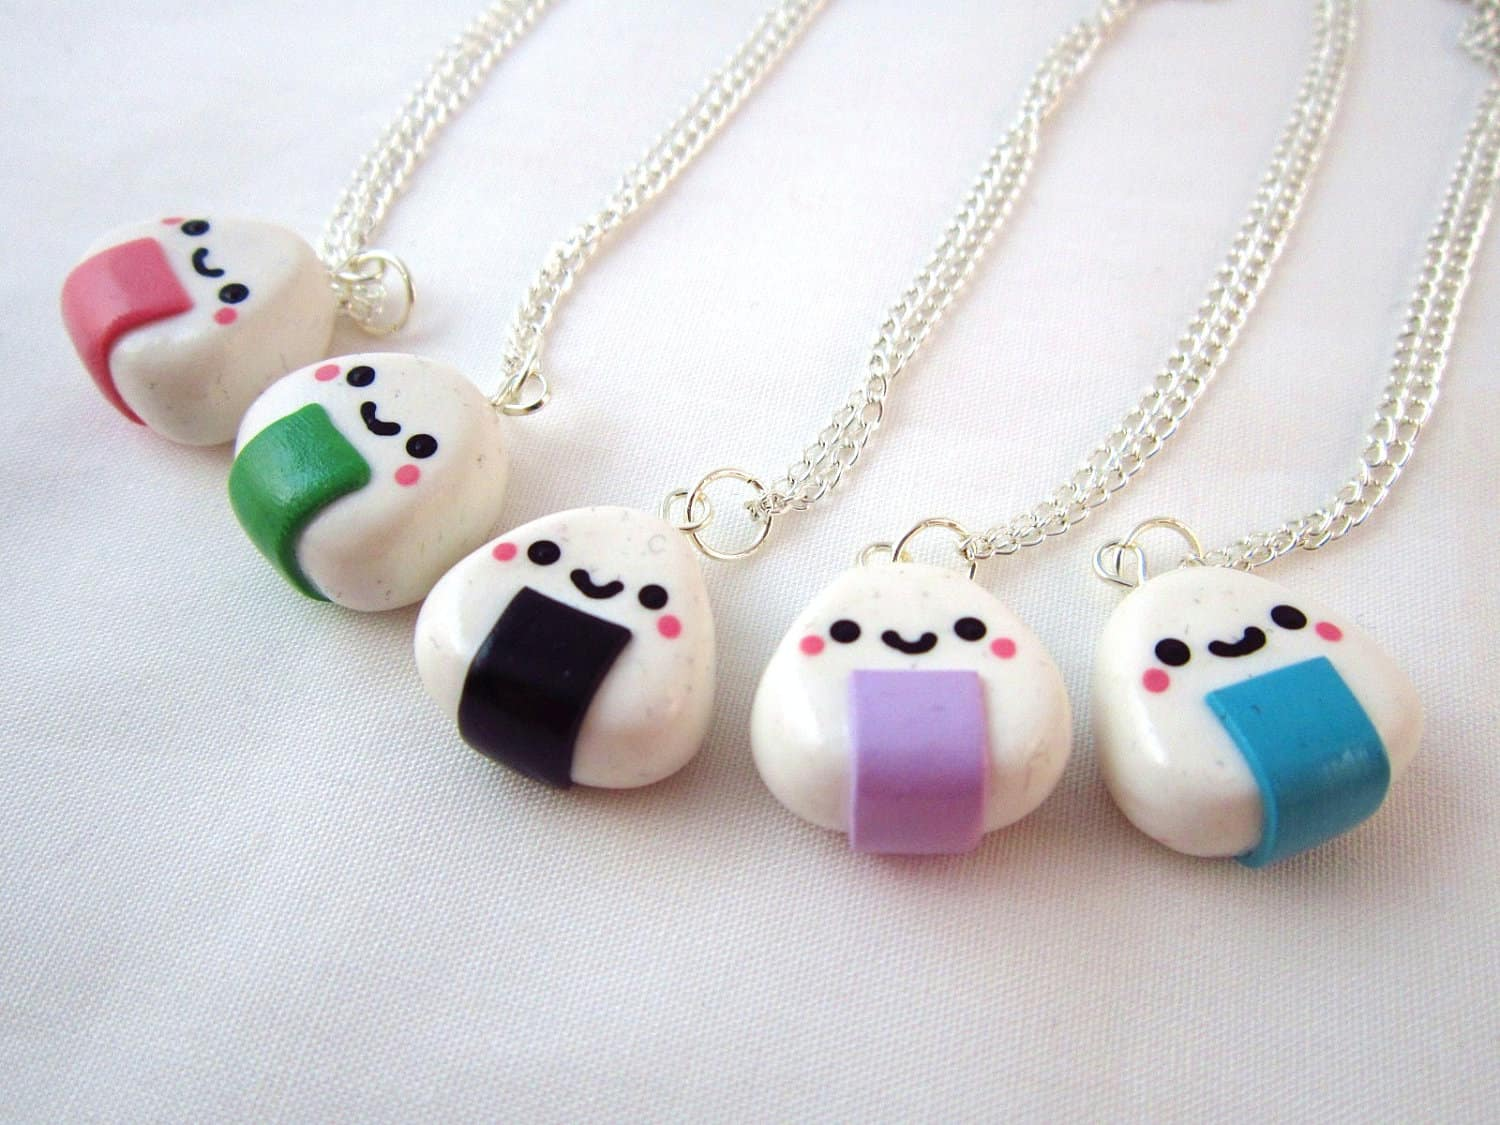 Easy Friend Clay Charms